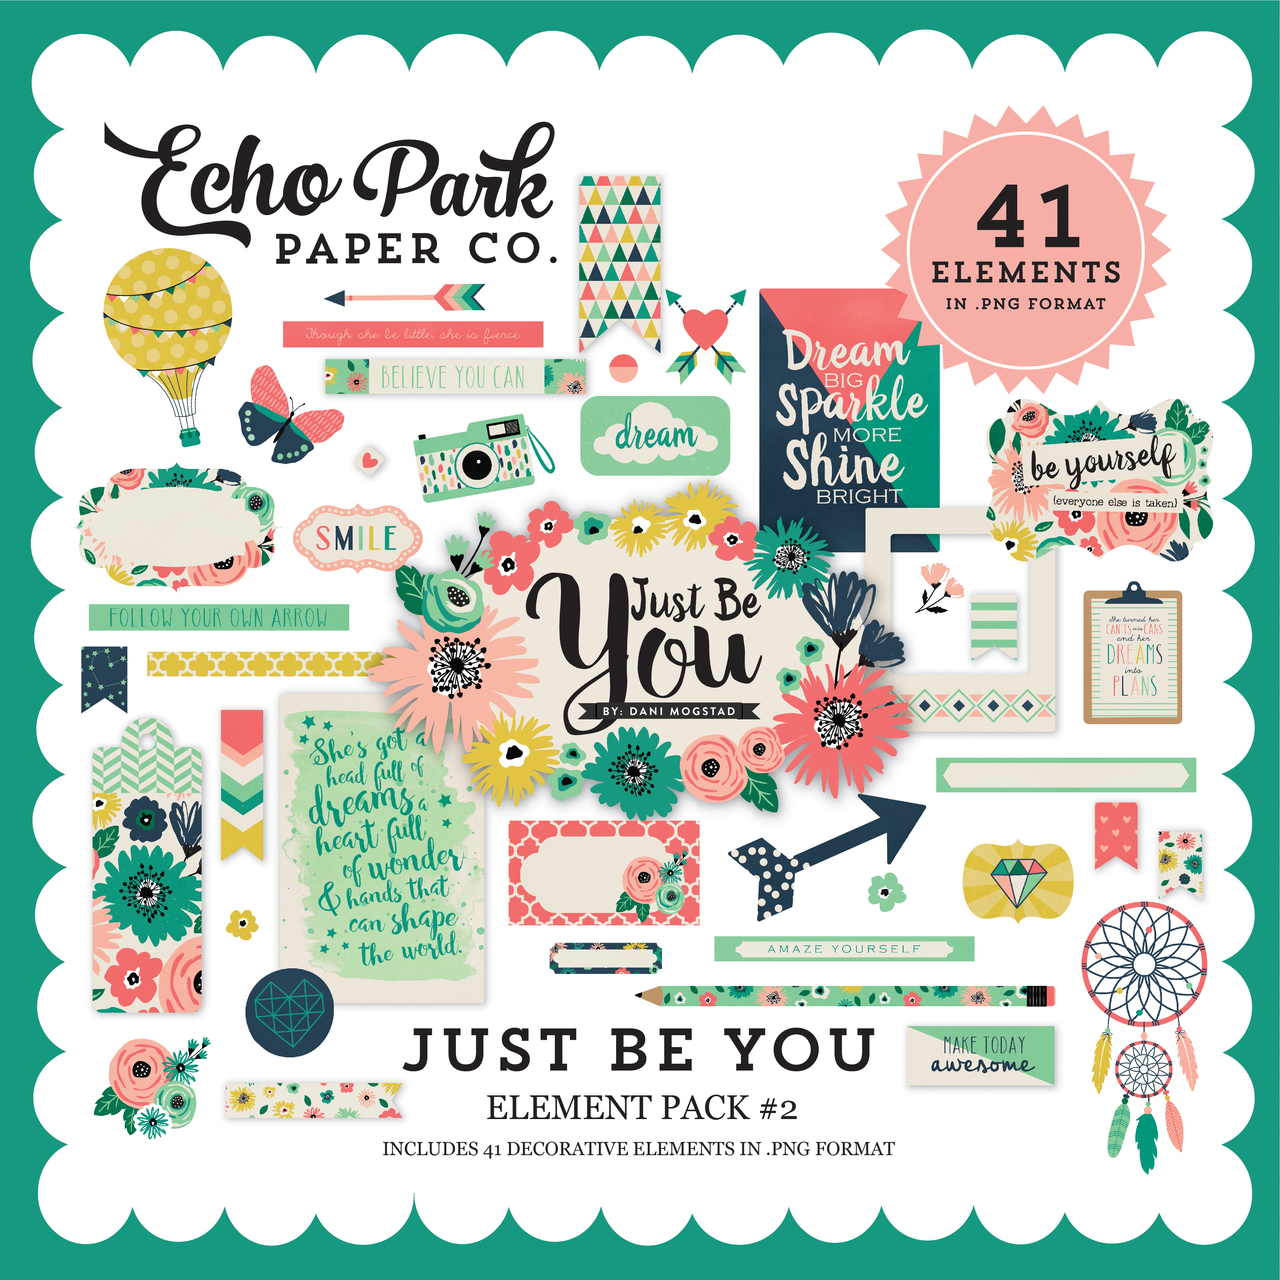 Just Be You Element Pack #2